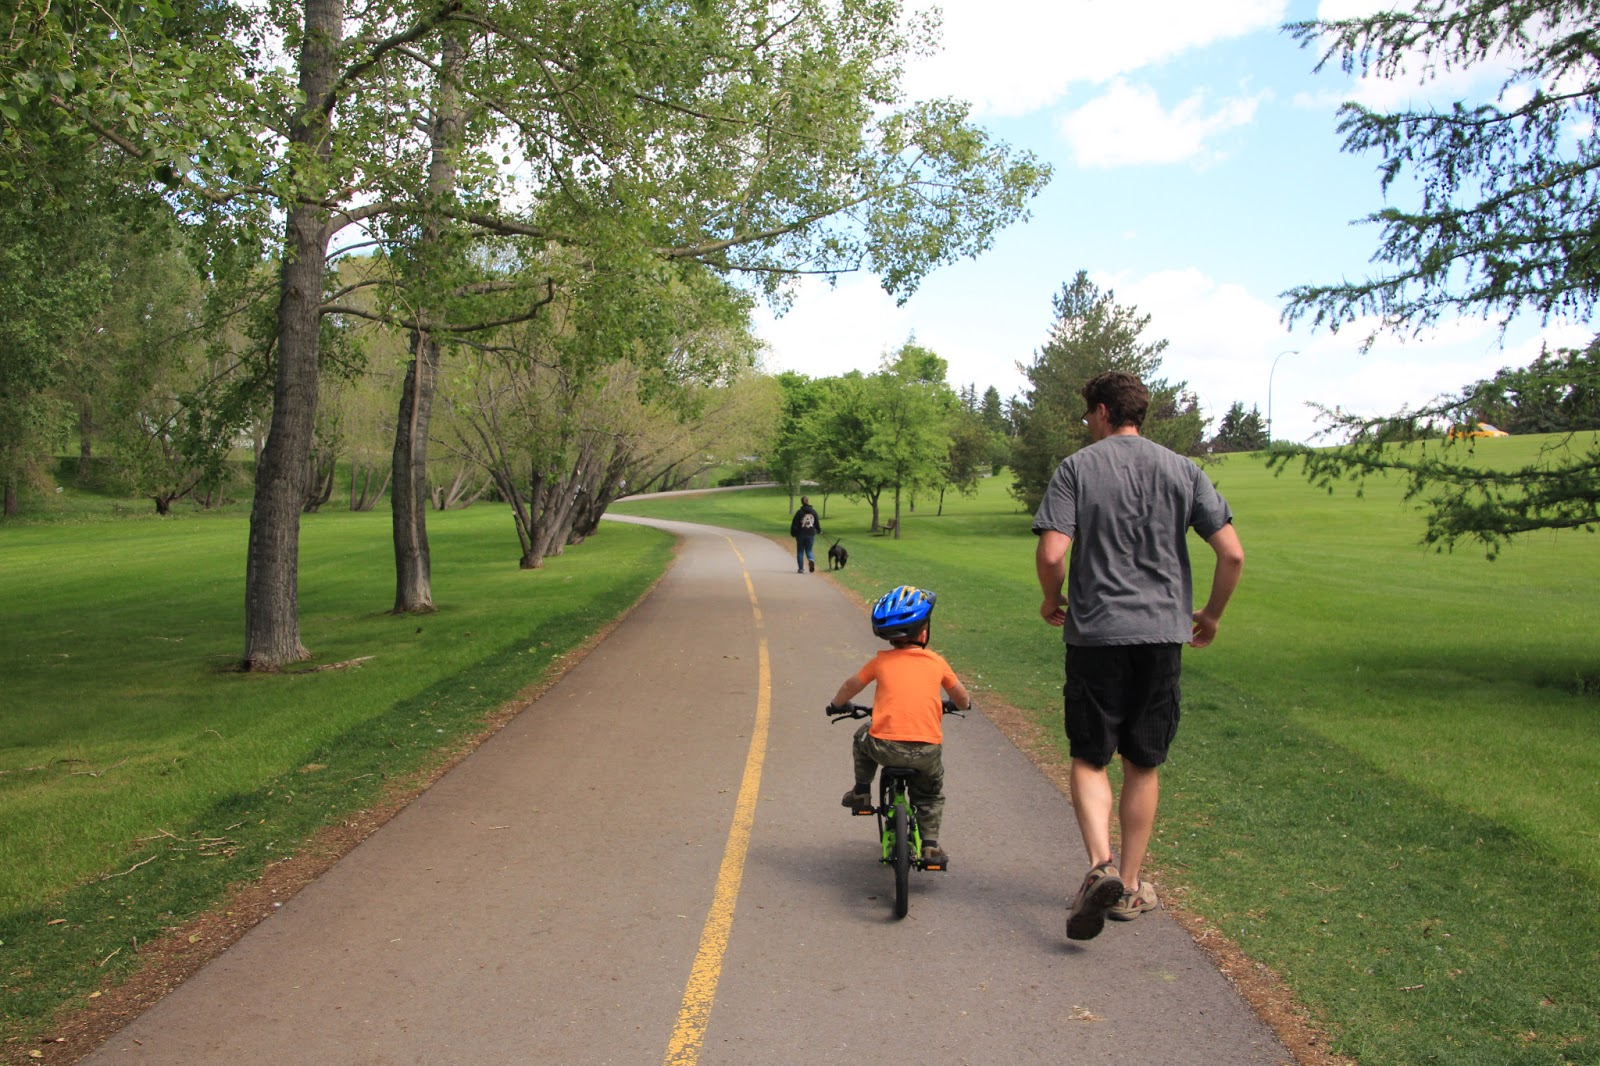 Family Bike Paths in Calgary - Confederation park